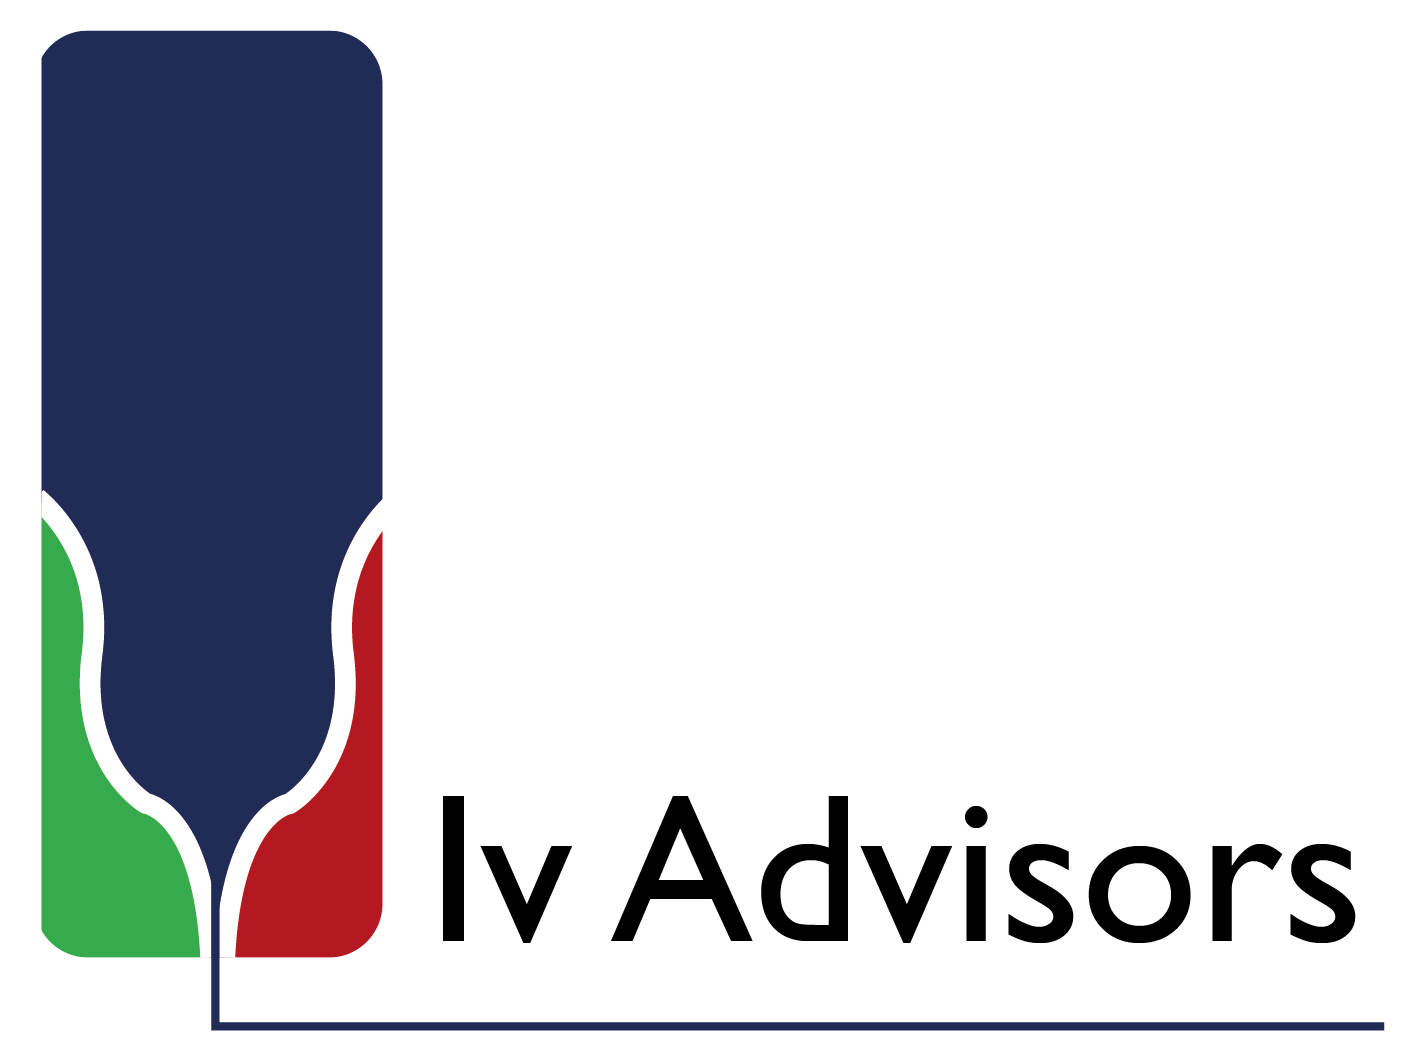 Growth clipart succession planning. Iv advisors